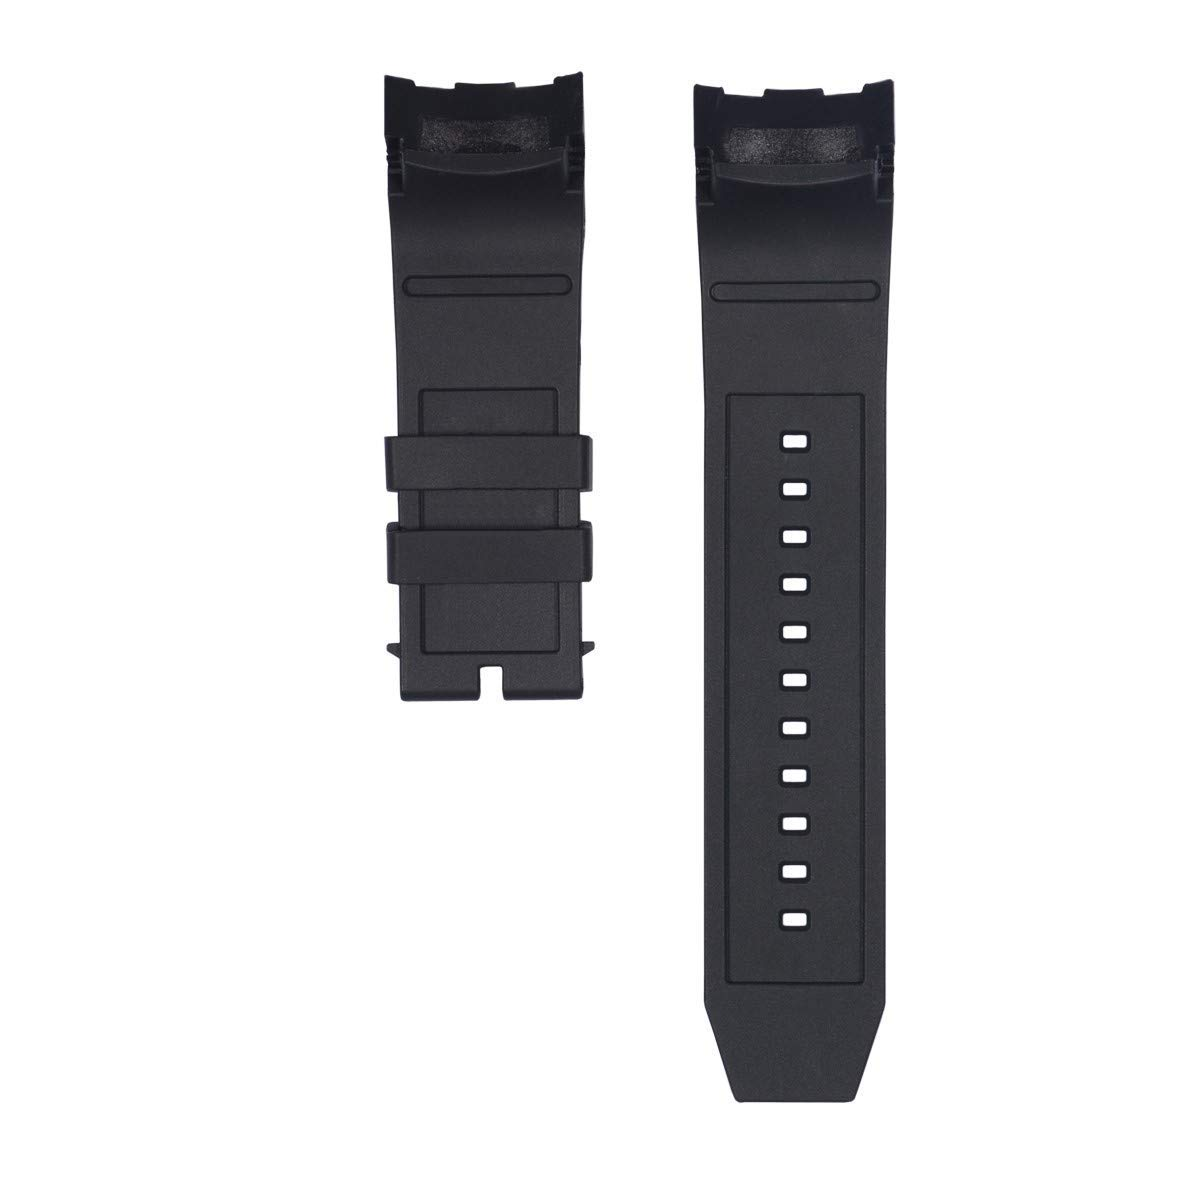 CACA for Invicta Pro Diver Watch Replacement Rubber Silicone Band/Strap - Black Invicta Watch Bands by CACA Watchband (Image #2)